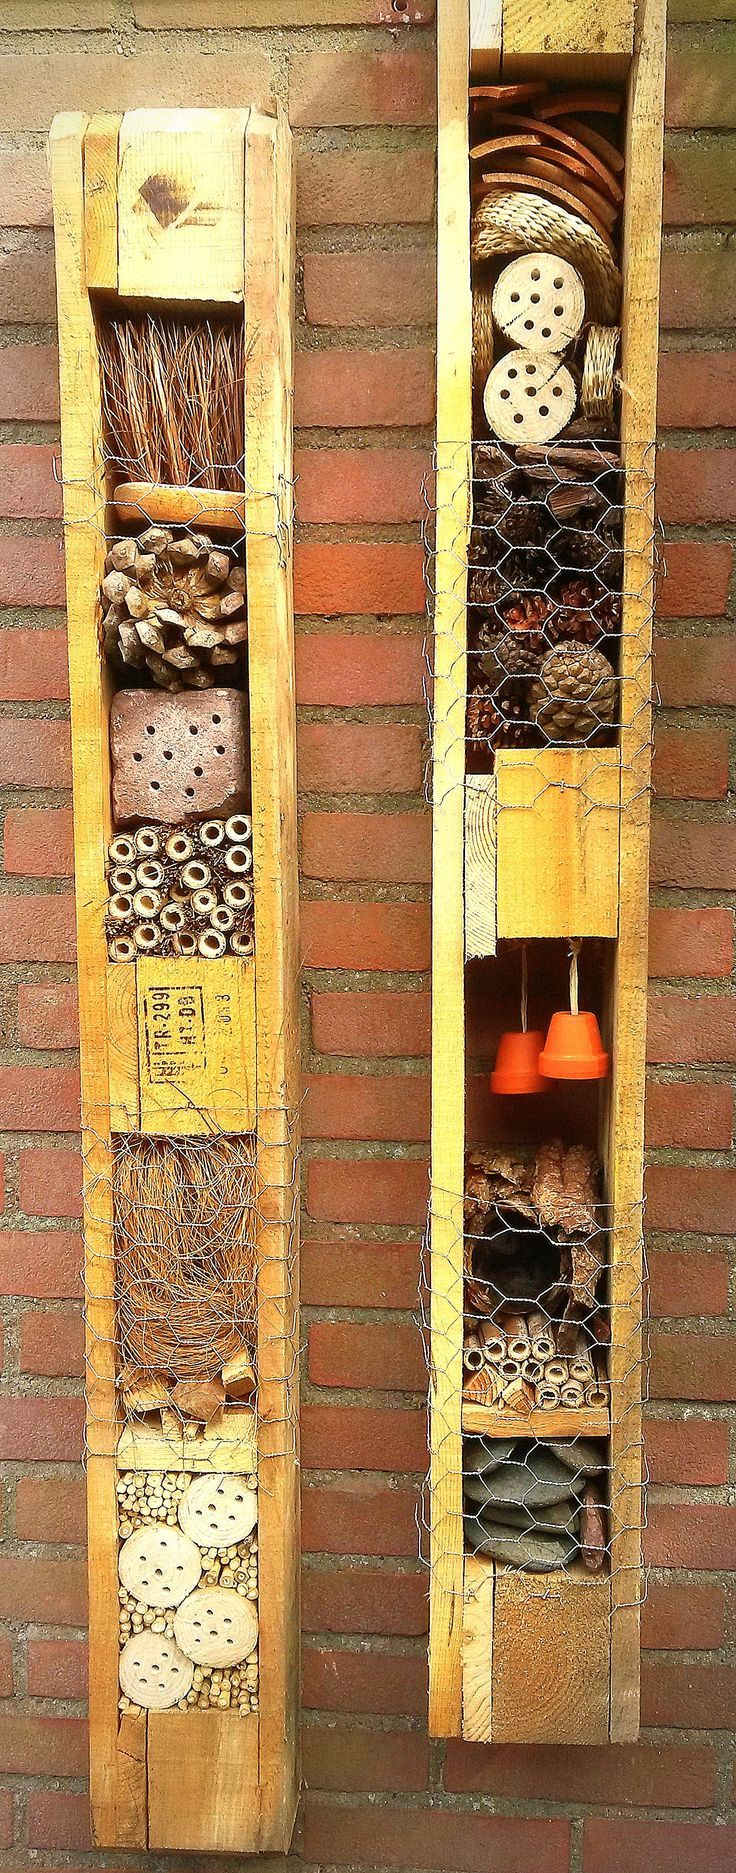 insect hotel from palet: